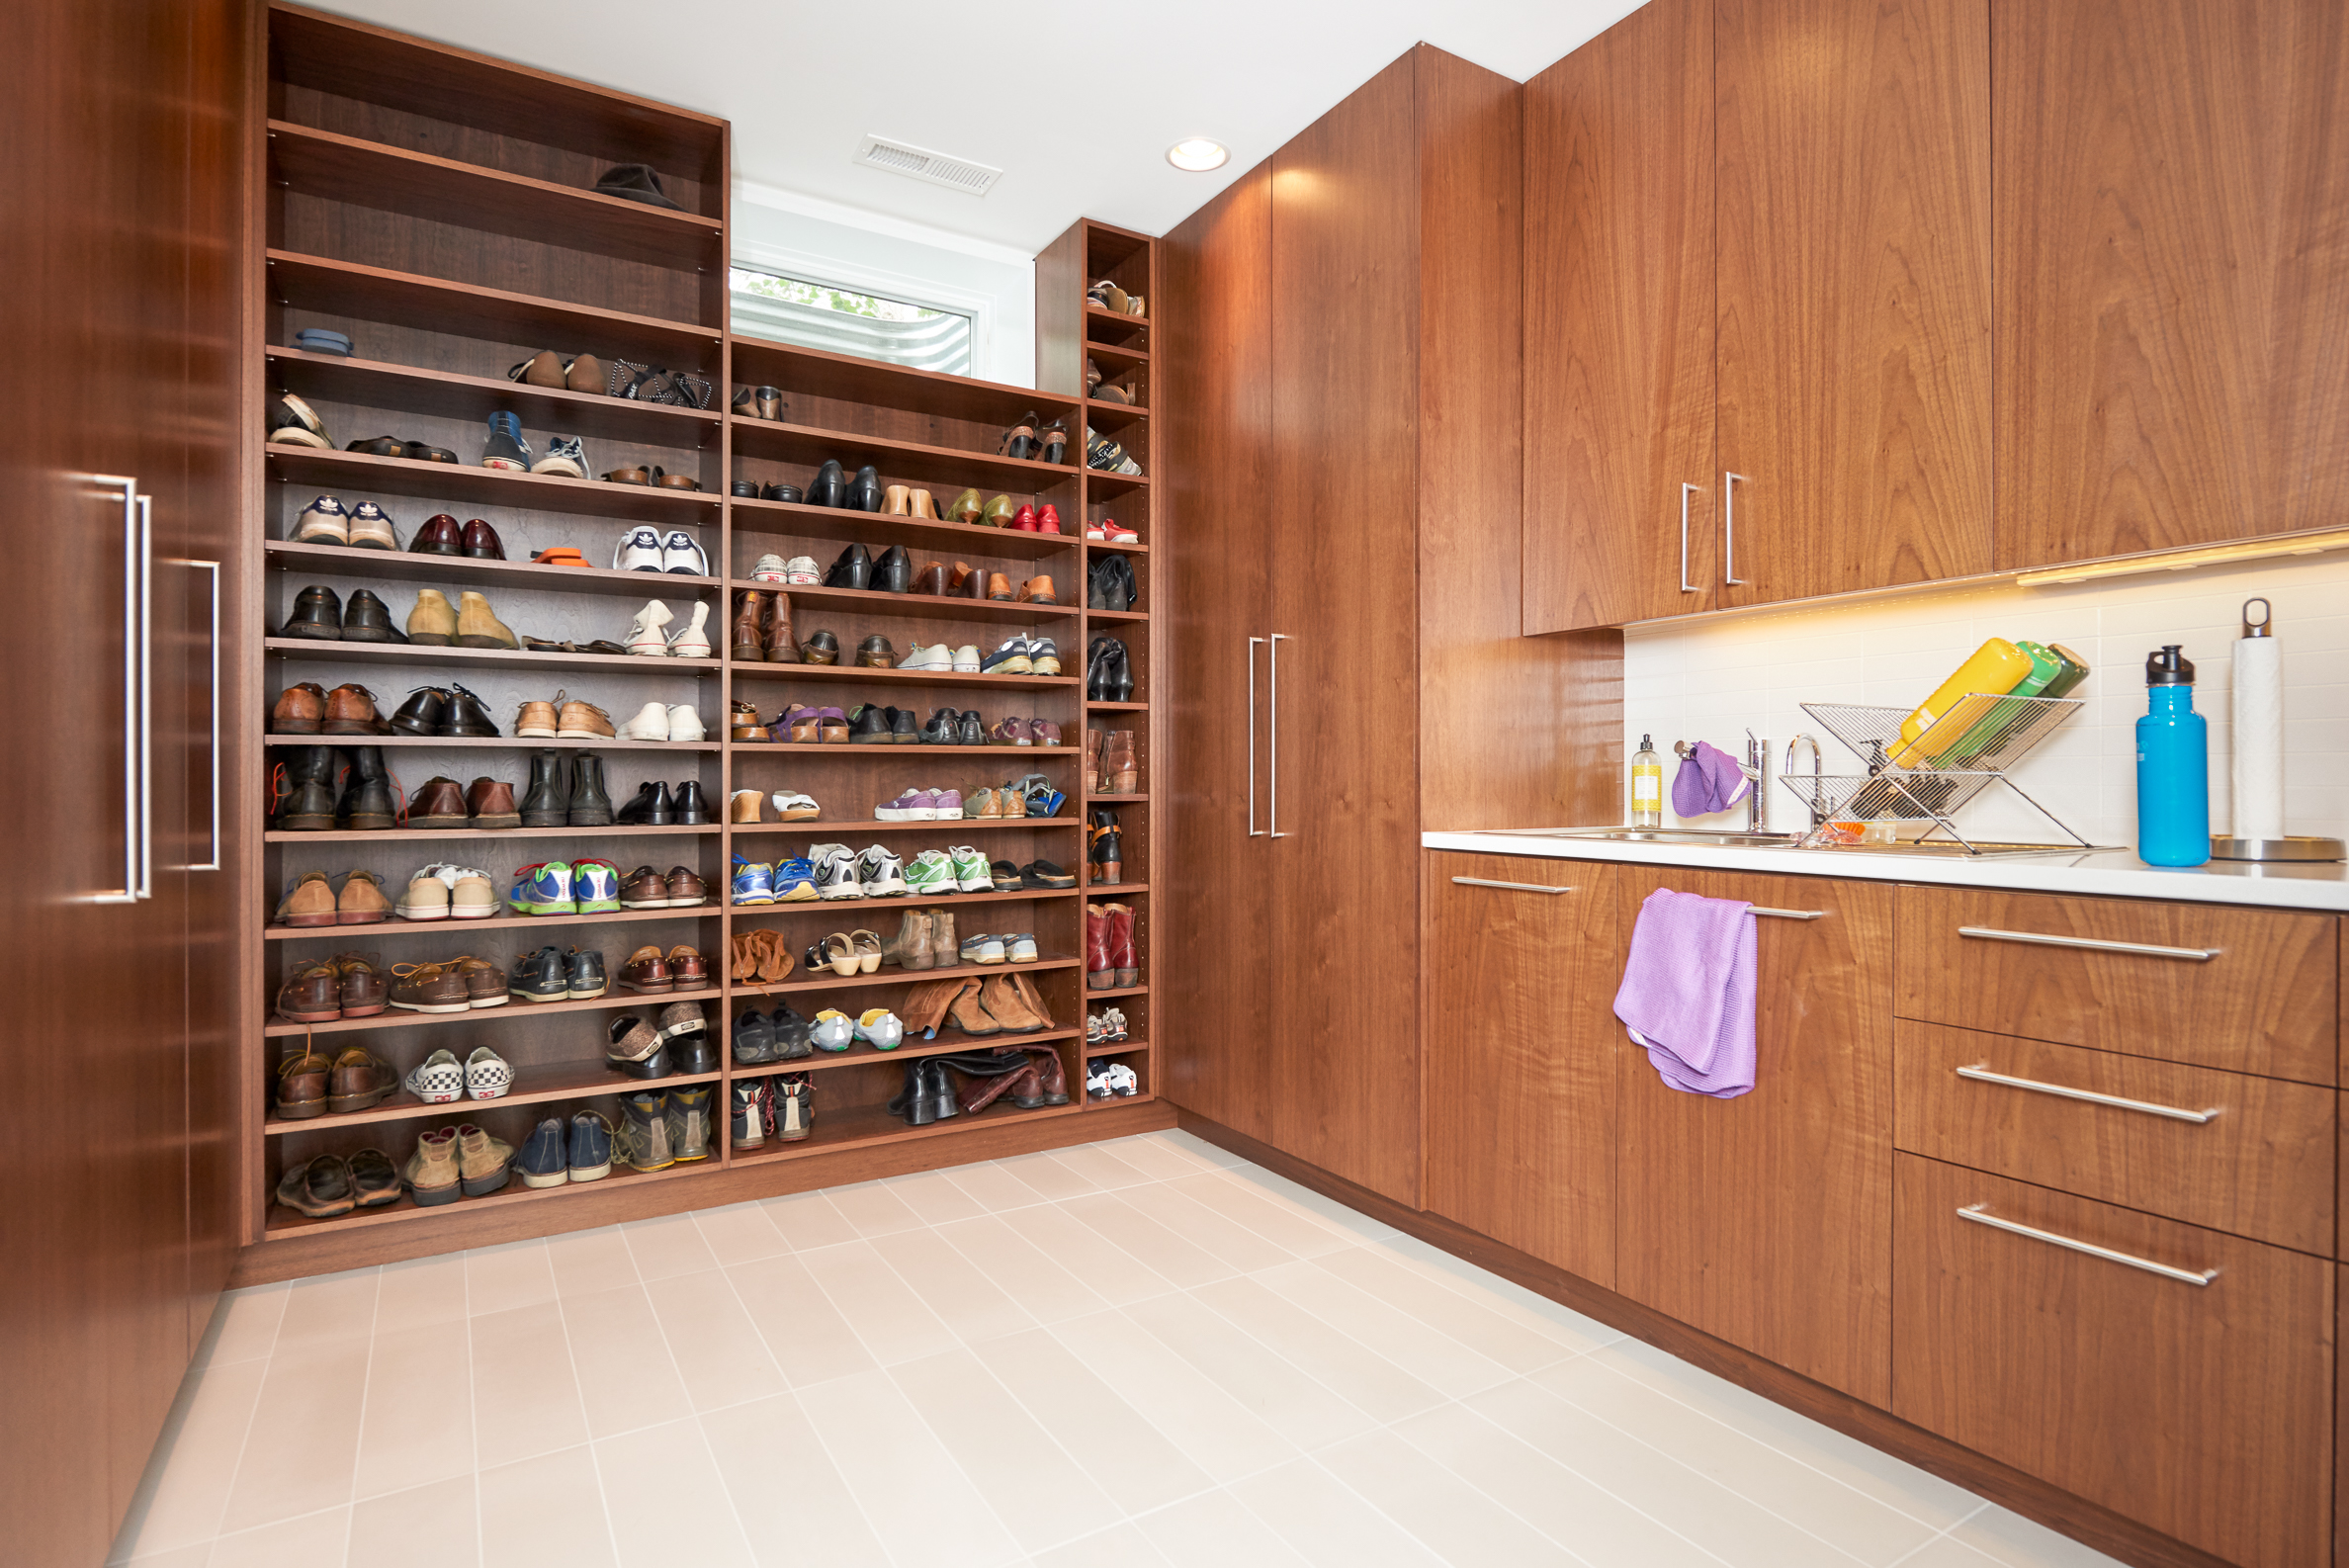 Custom shoe storage and mudroom cabinetry designed by Christian Dean Architecture